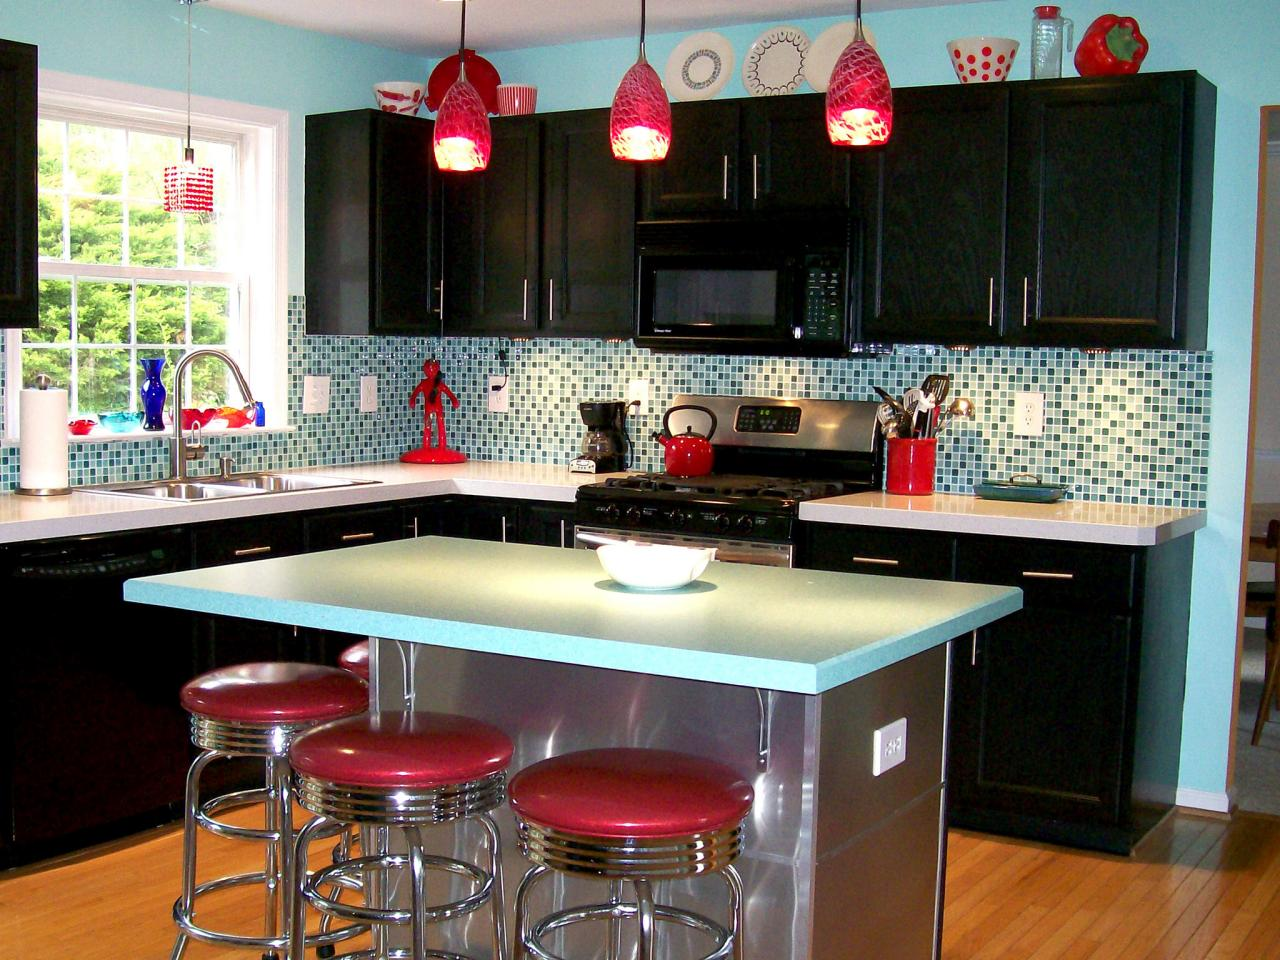 Kitchen Countertop Options Diy : retro blue and red kitchen has a formica kitchen island countertop ...